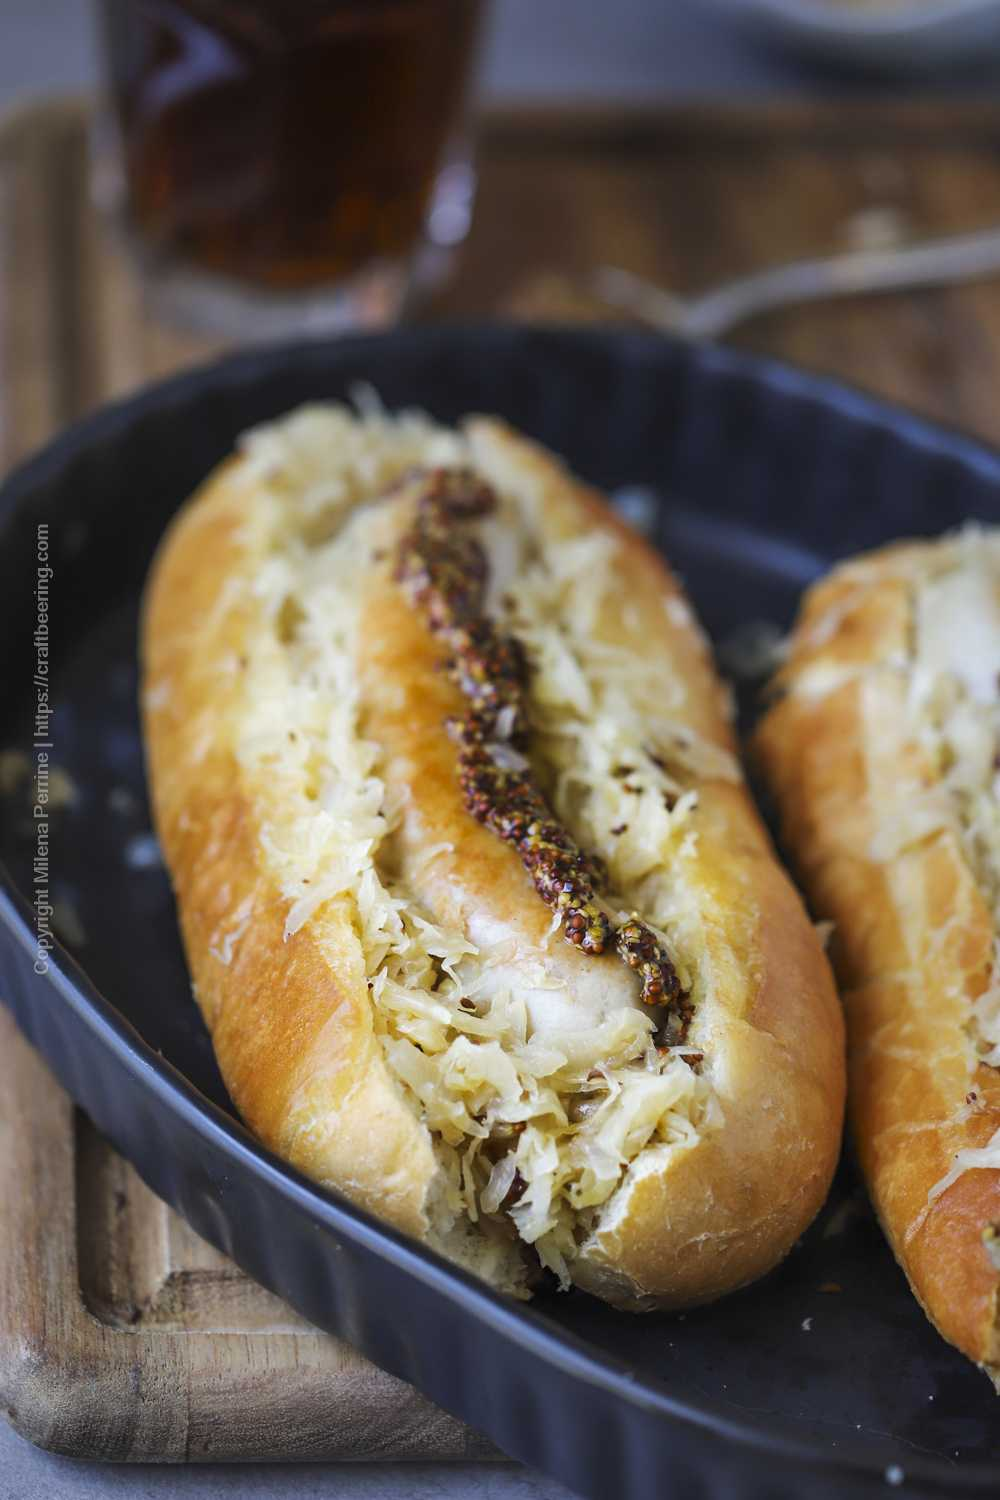 Beer braised sauerkraut and bratwurst on a bun.